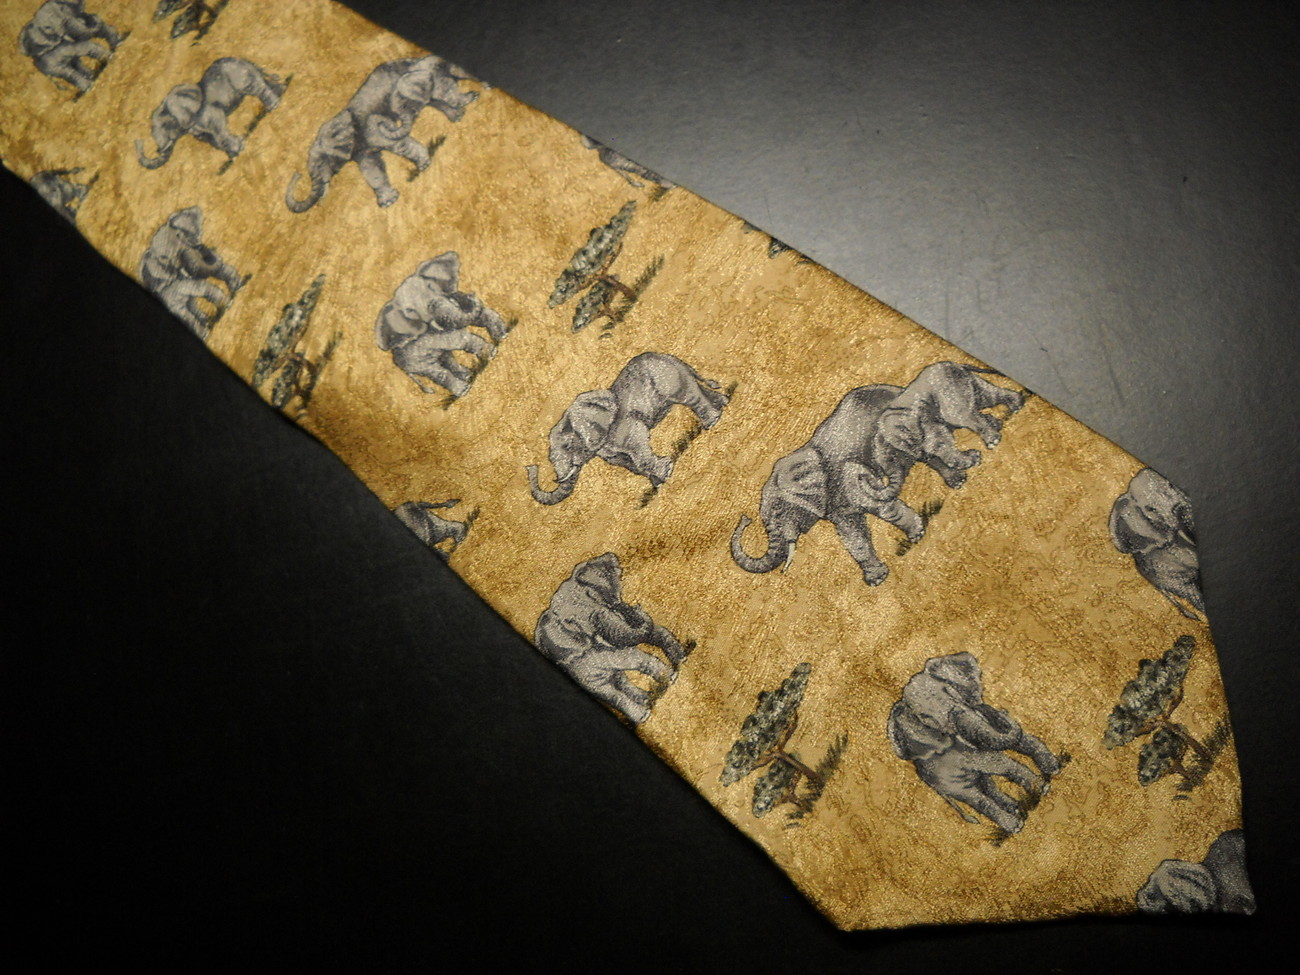 Tie endangered species elephants gray against yellows 02